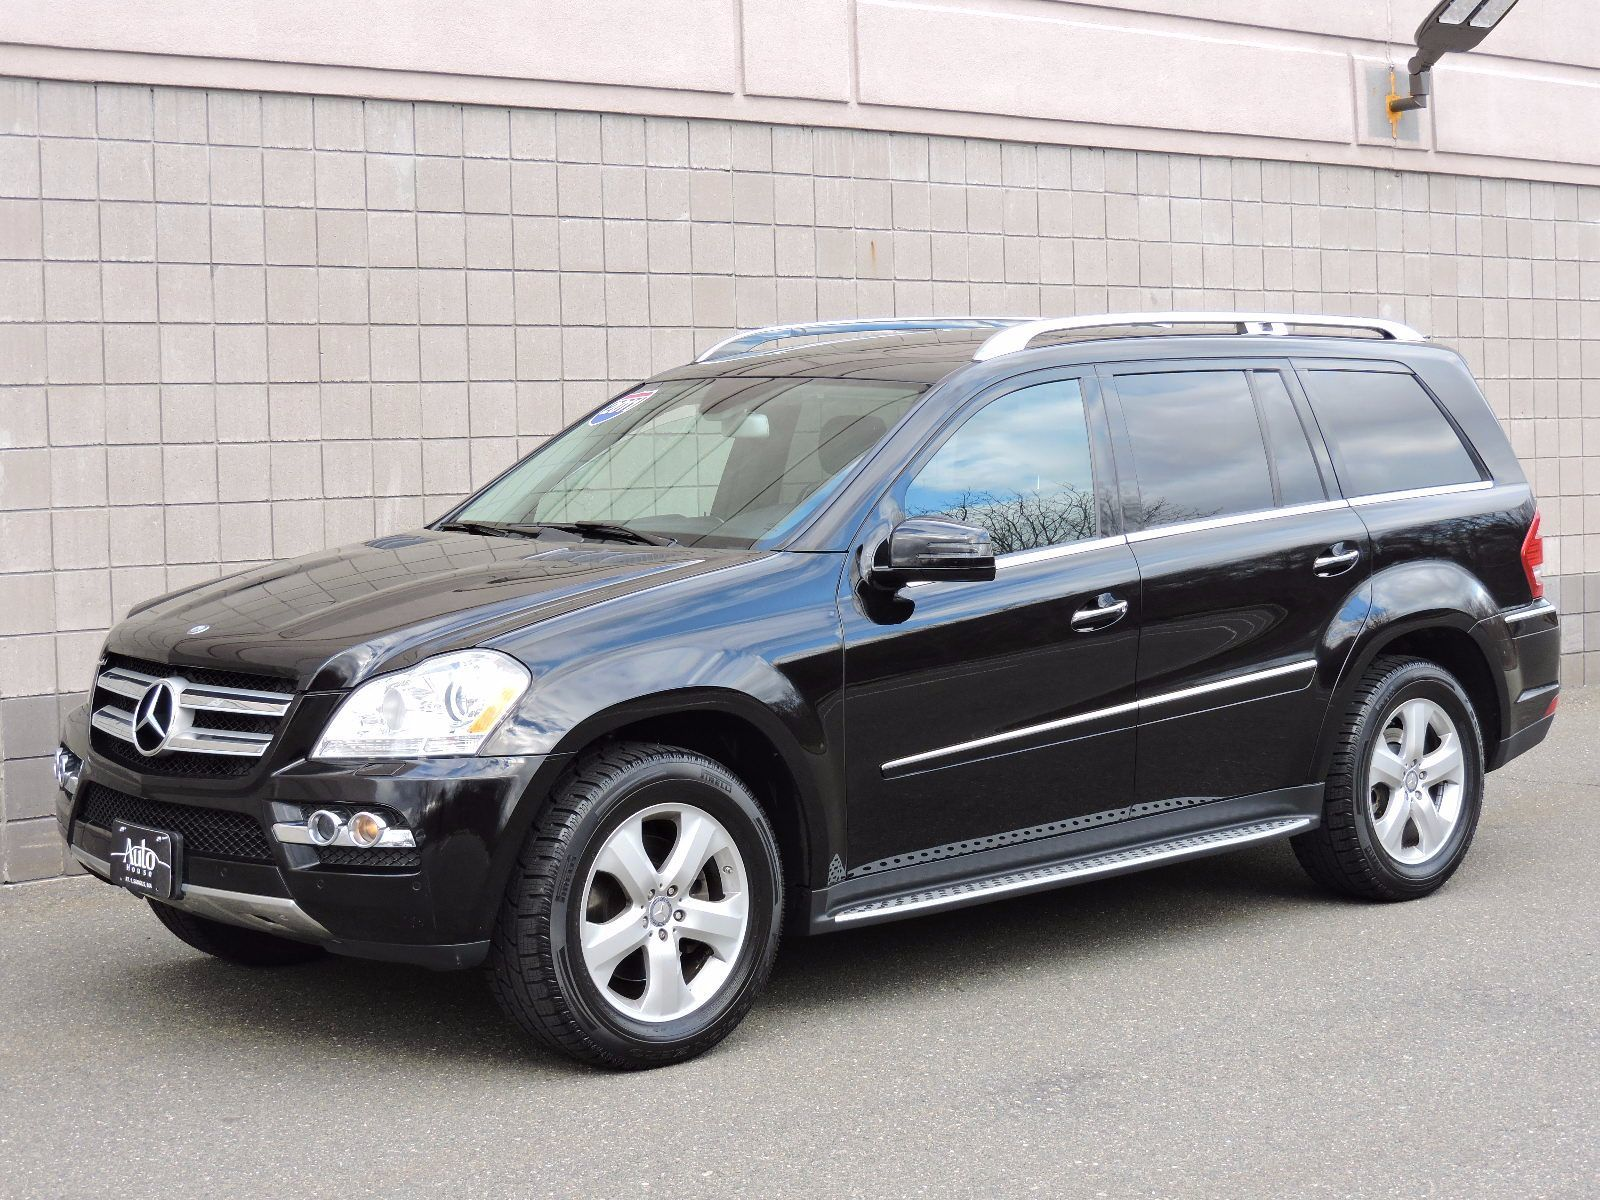 Used 2011 mercedes benz gl450 hse at auto house usa saugus for Used mercedes benz gl450